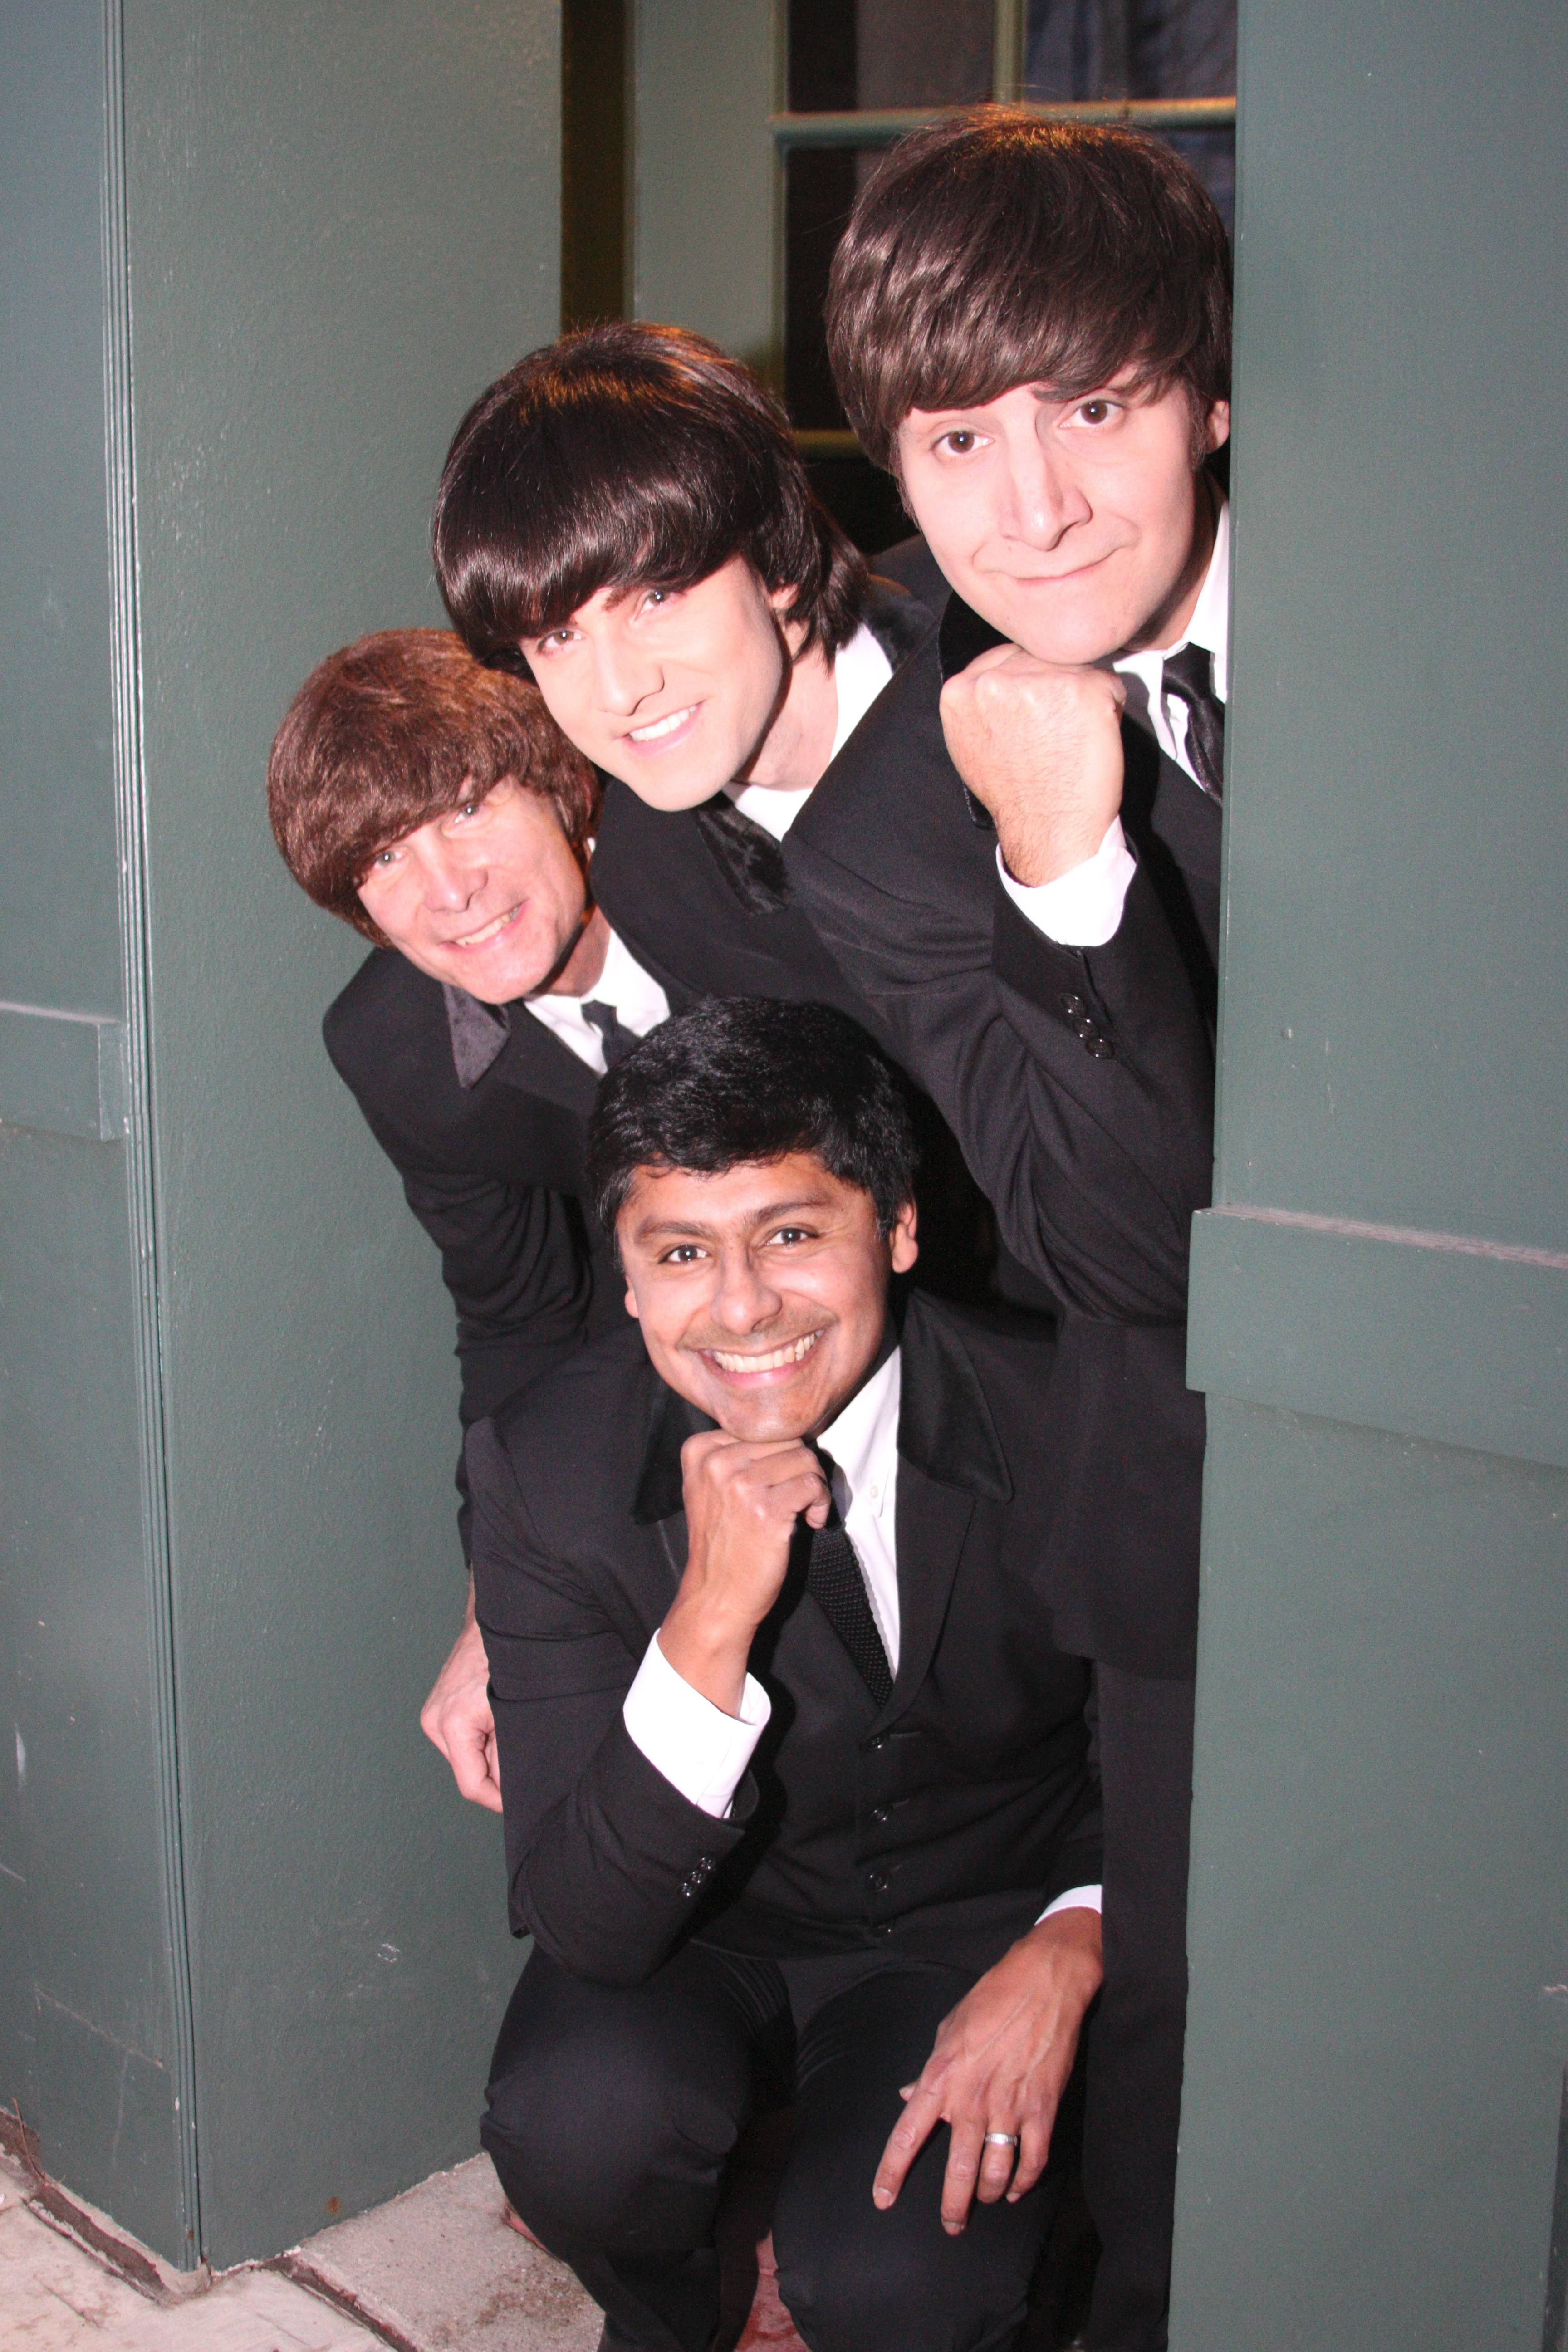 The Chicago-based Cavern Beat recreates the hits and the energy of a Beatles concert. They will perform at the BACOA Bash on Friday, Sept. 5, at The Garlands of Barrington.